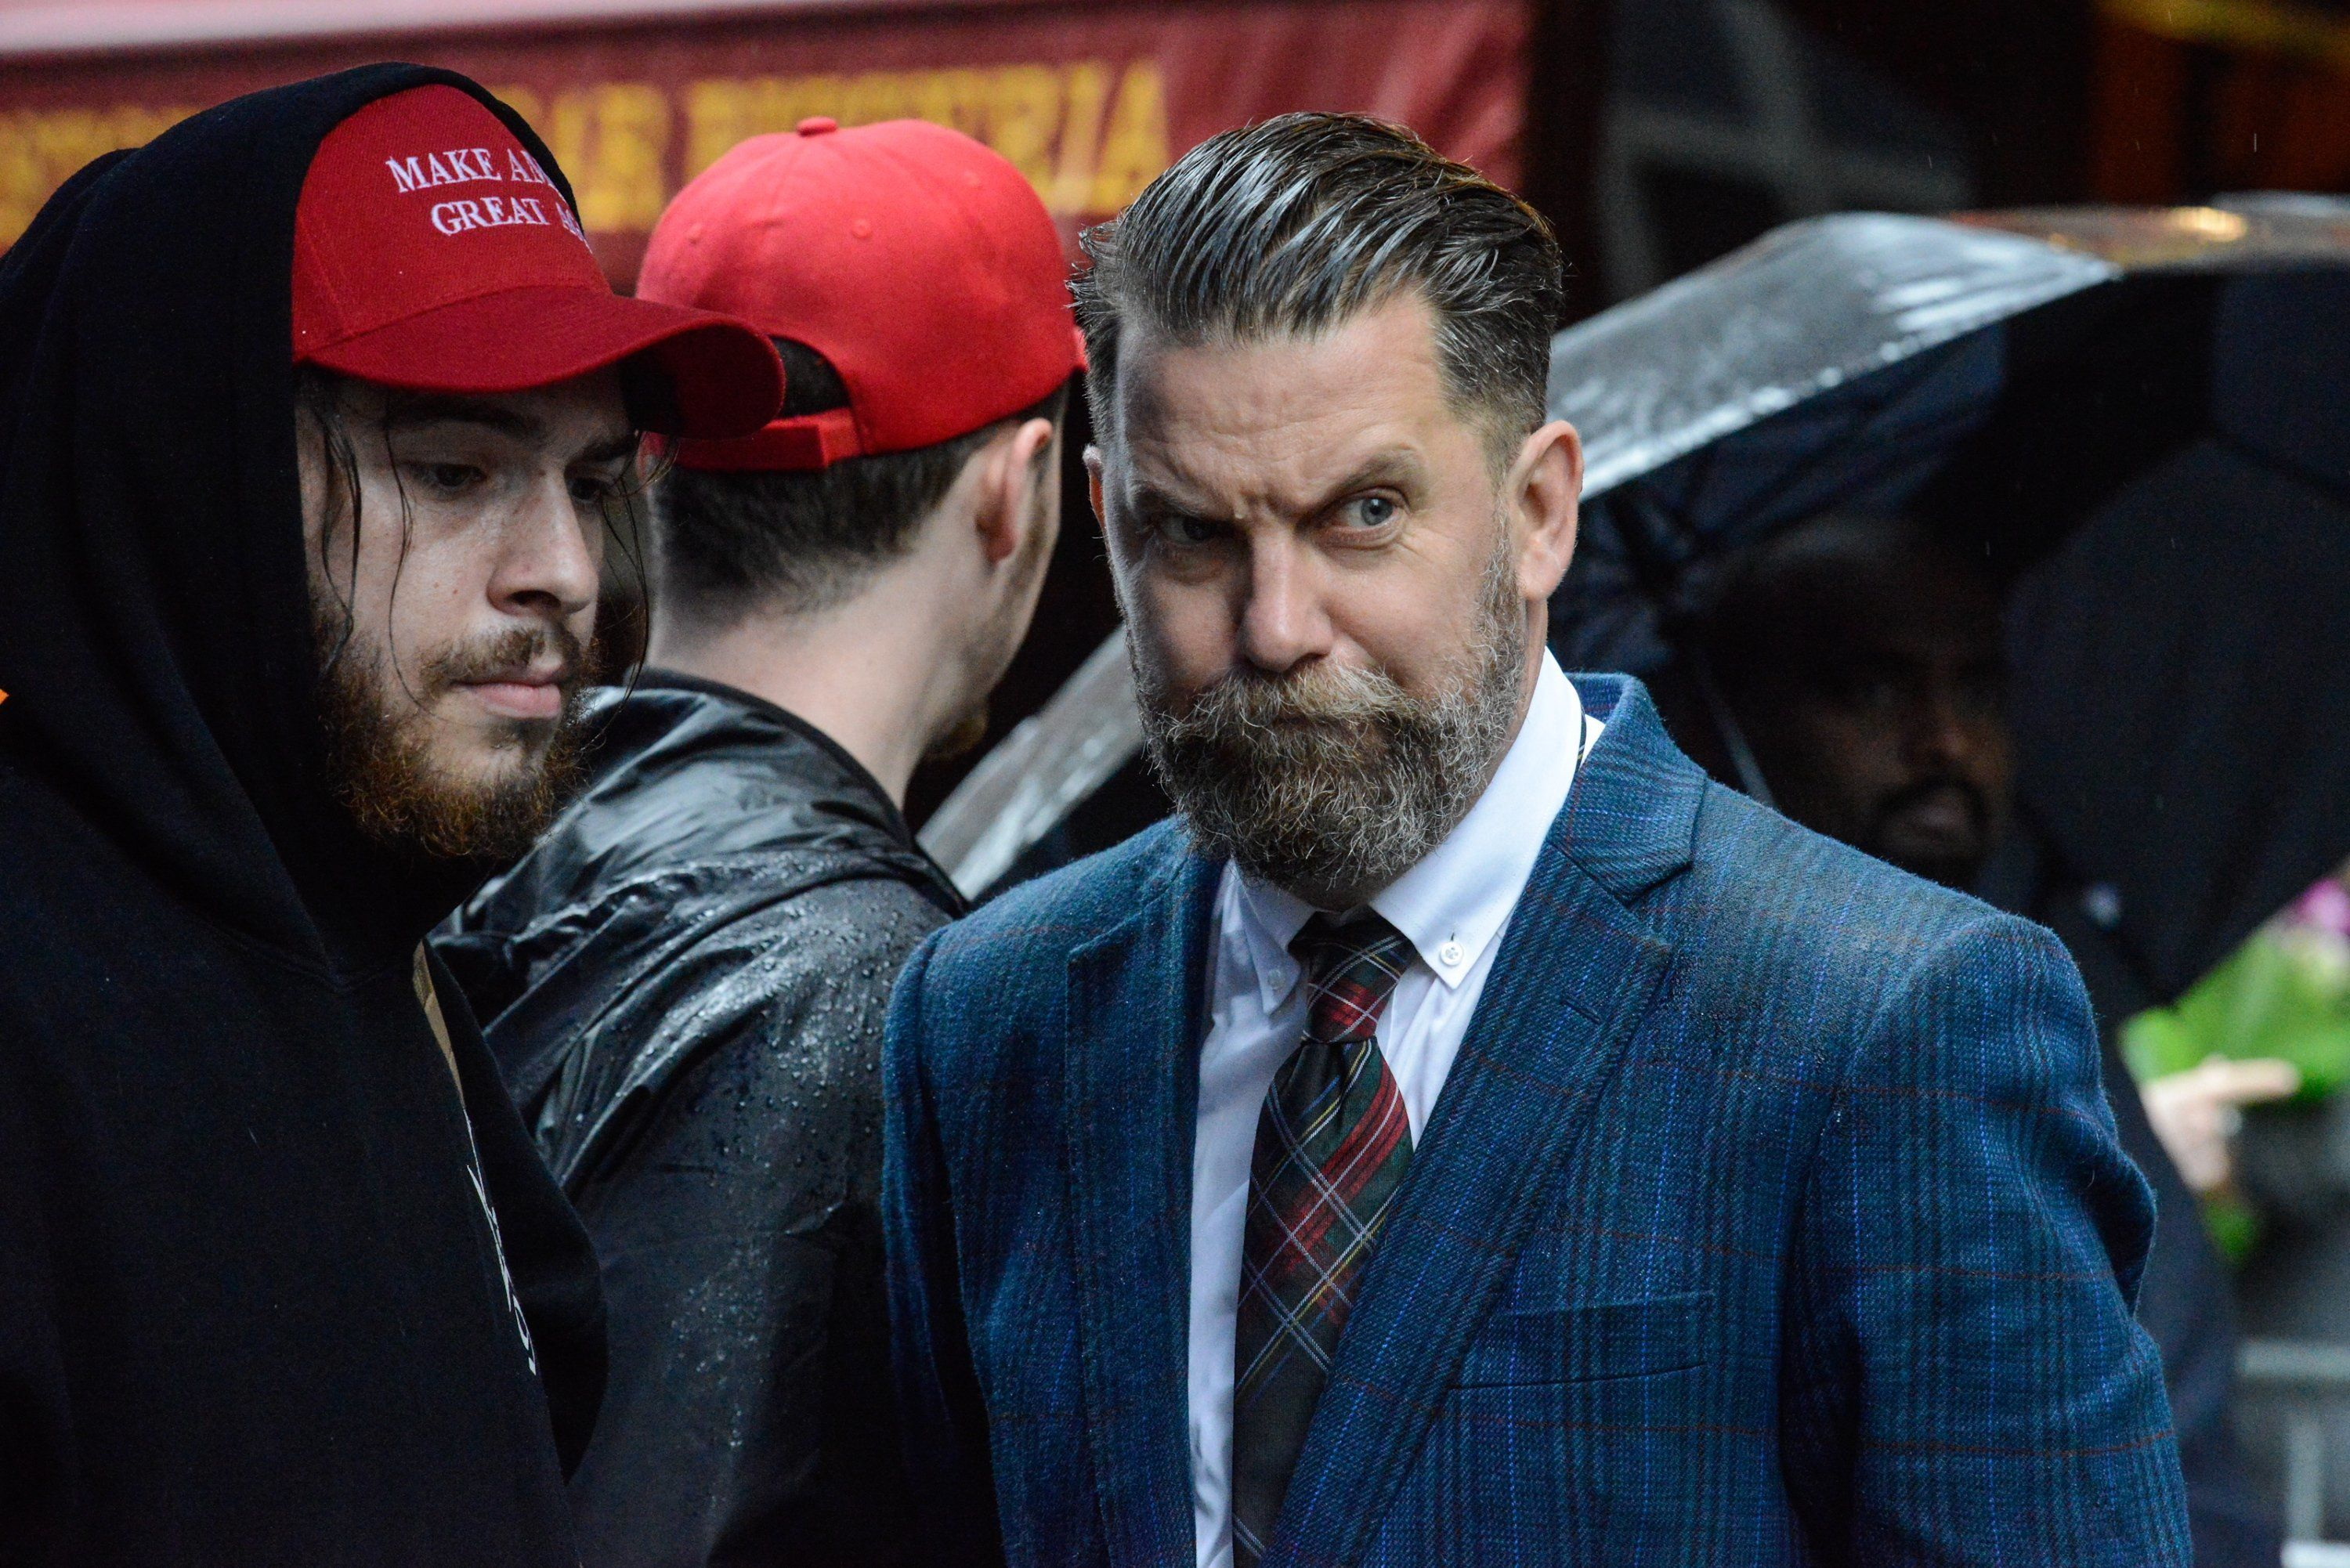 Gavin McInnes (right), the leader of the neo-fascist gang the Proud Boys, at a 2017 anti-Muslim demonstration in New York Cit